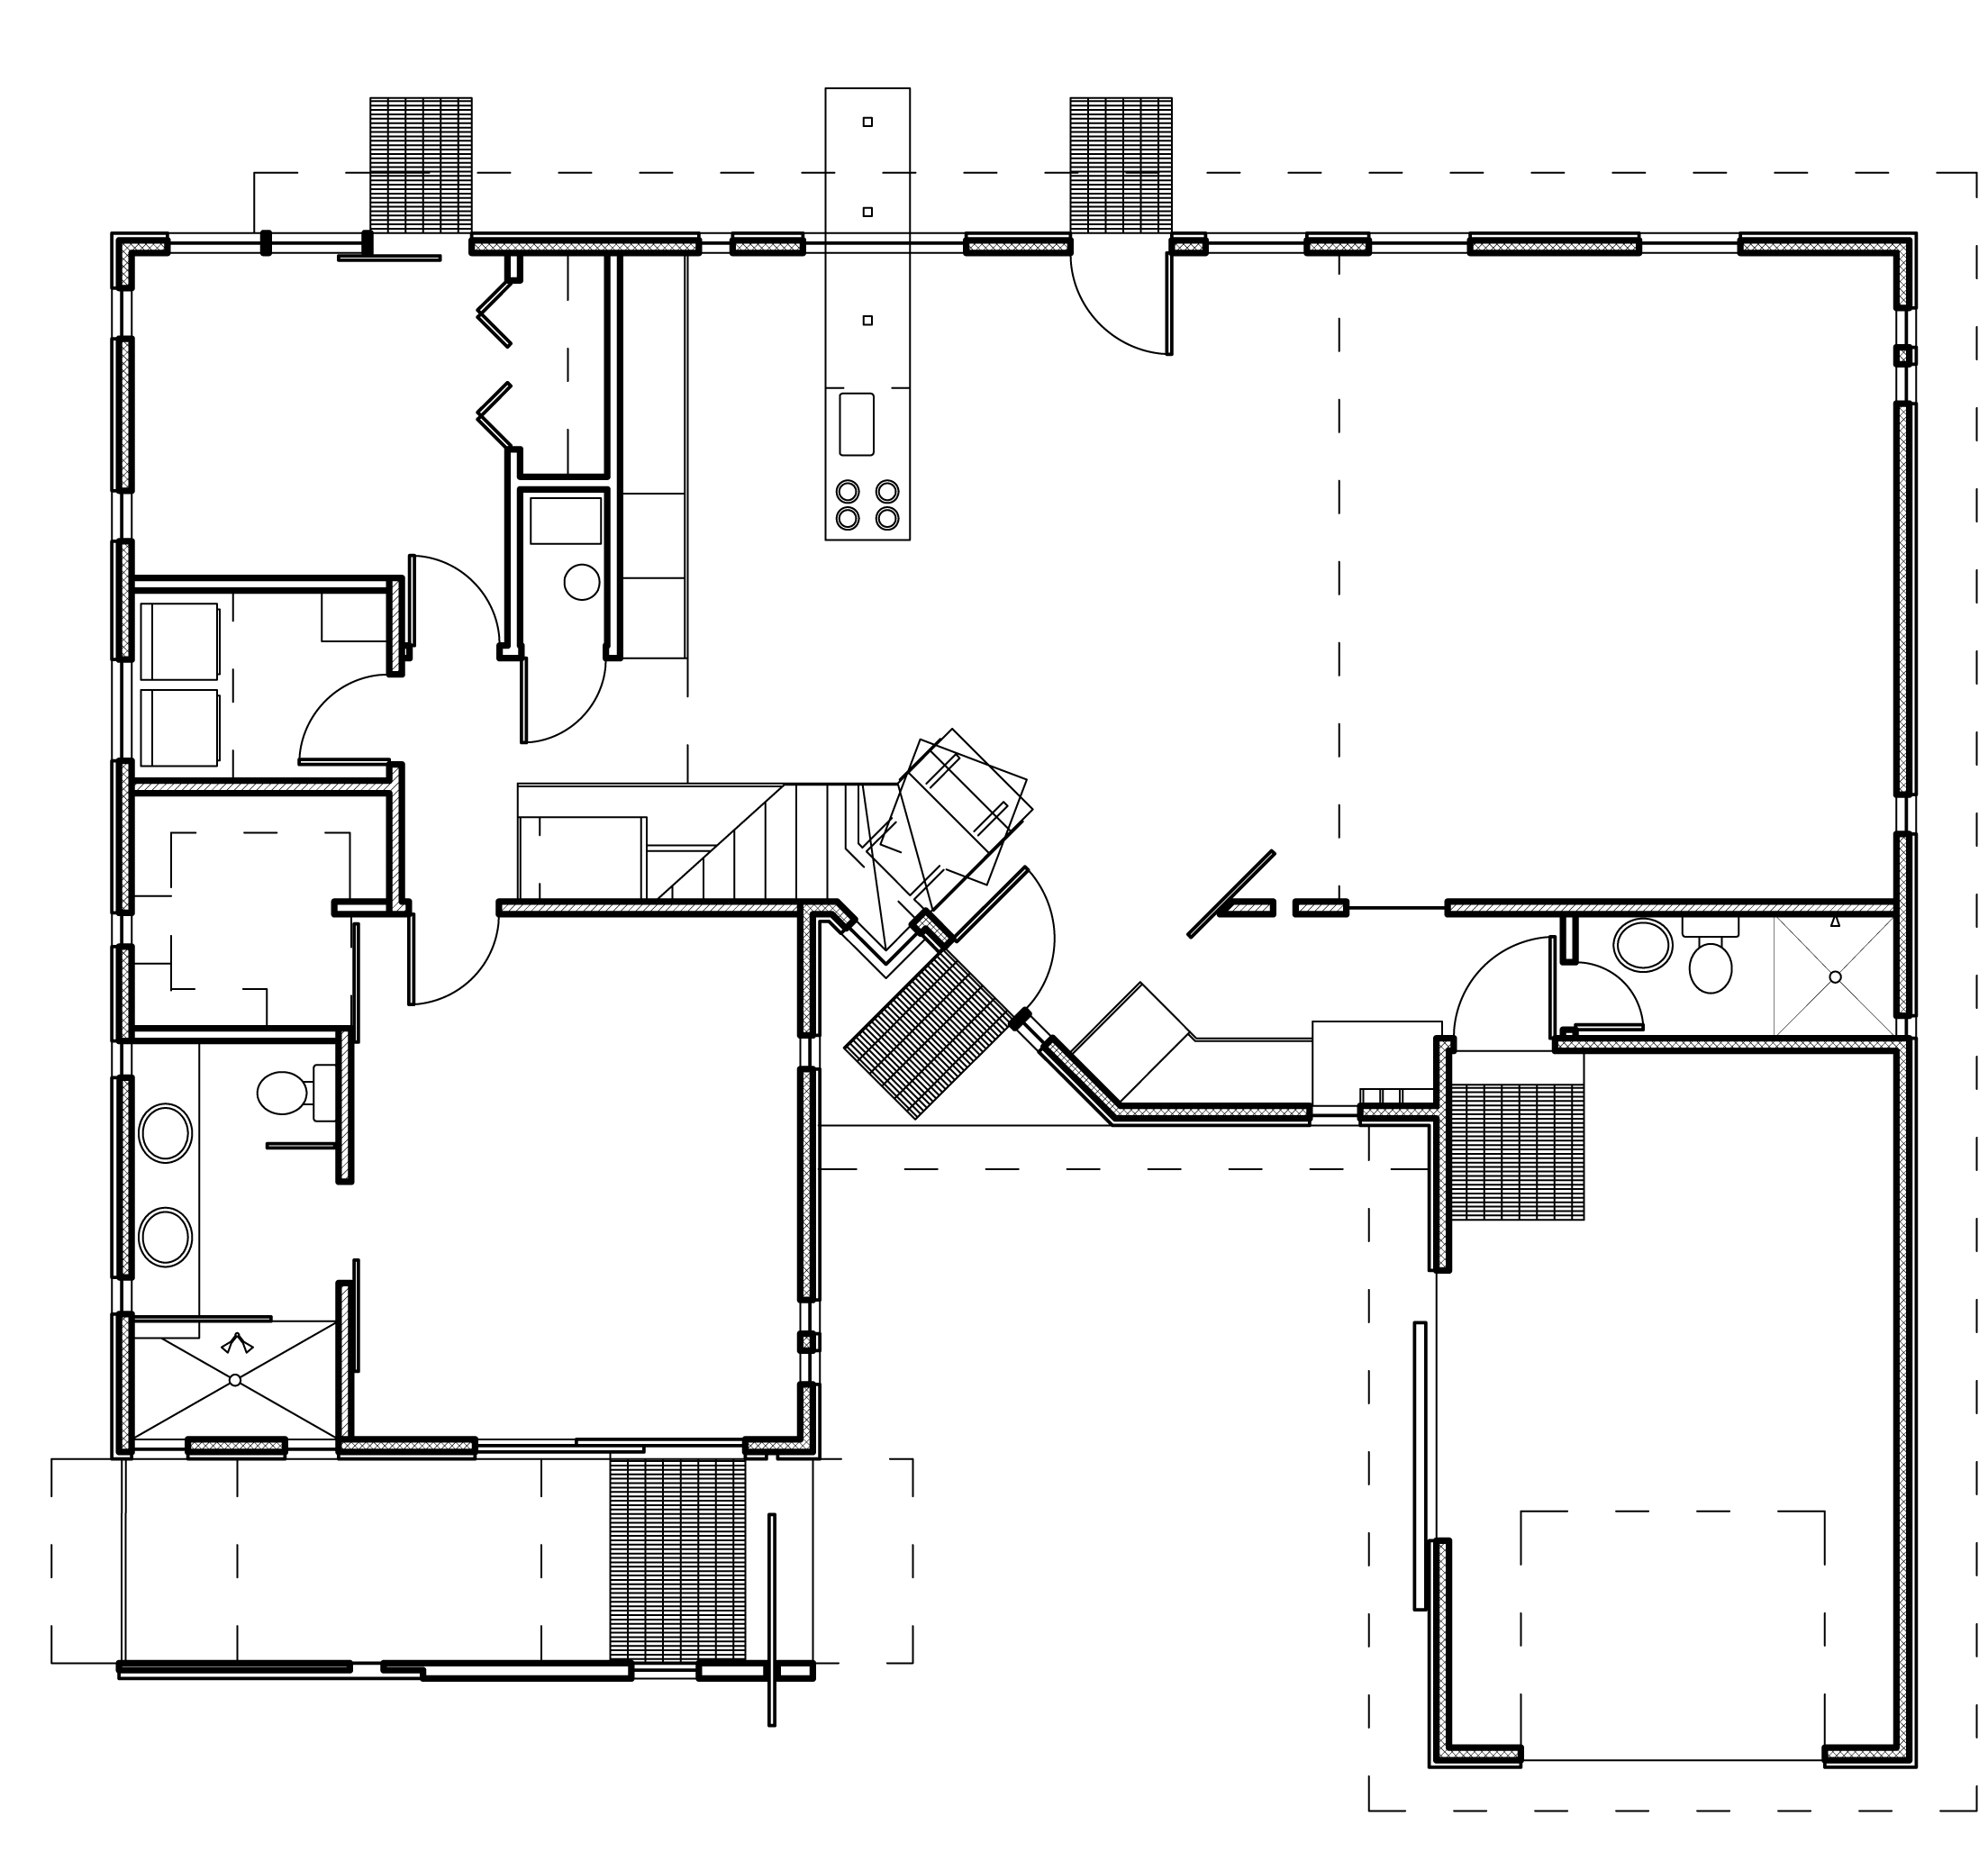 Modern house plans contemporary home designs floor plan 03 for Modern house open floor plans